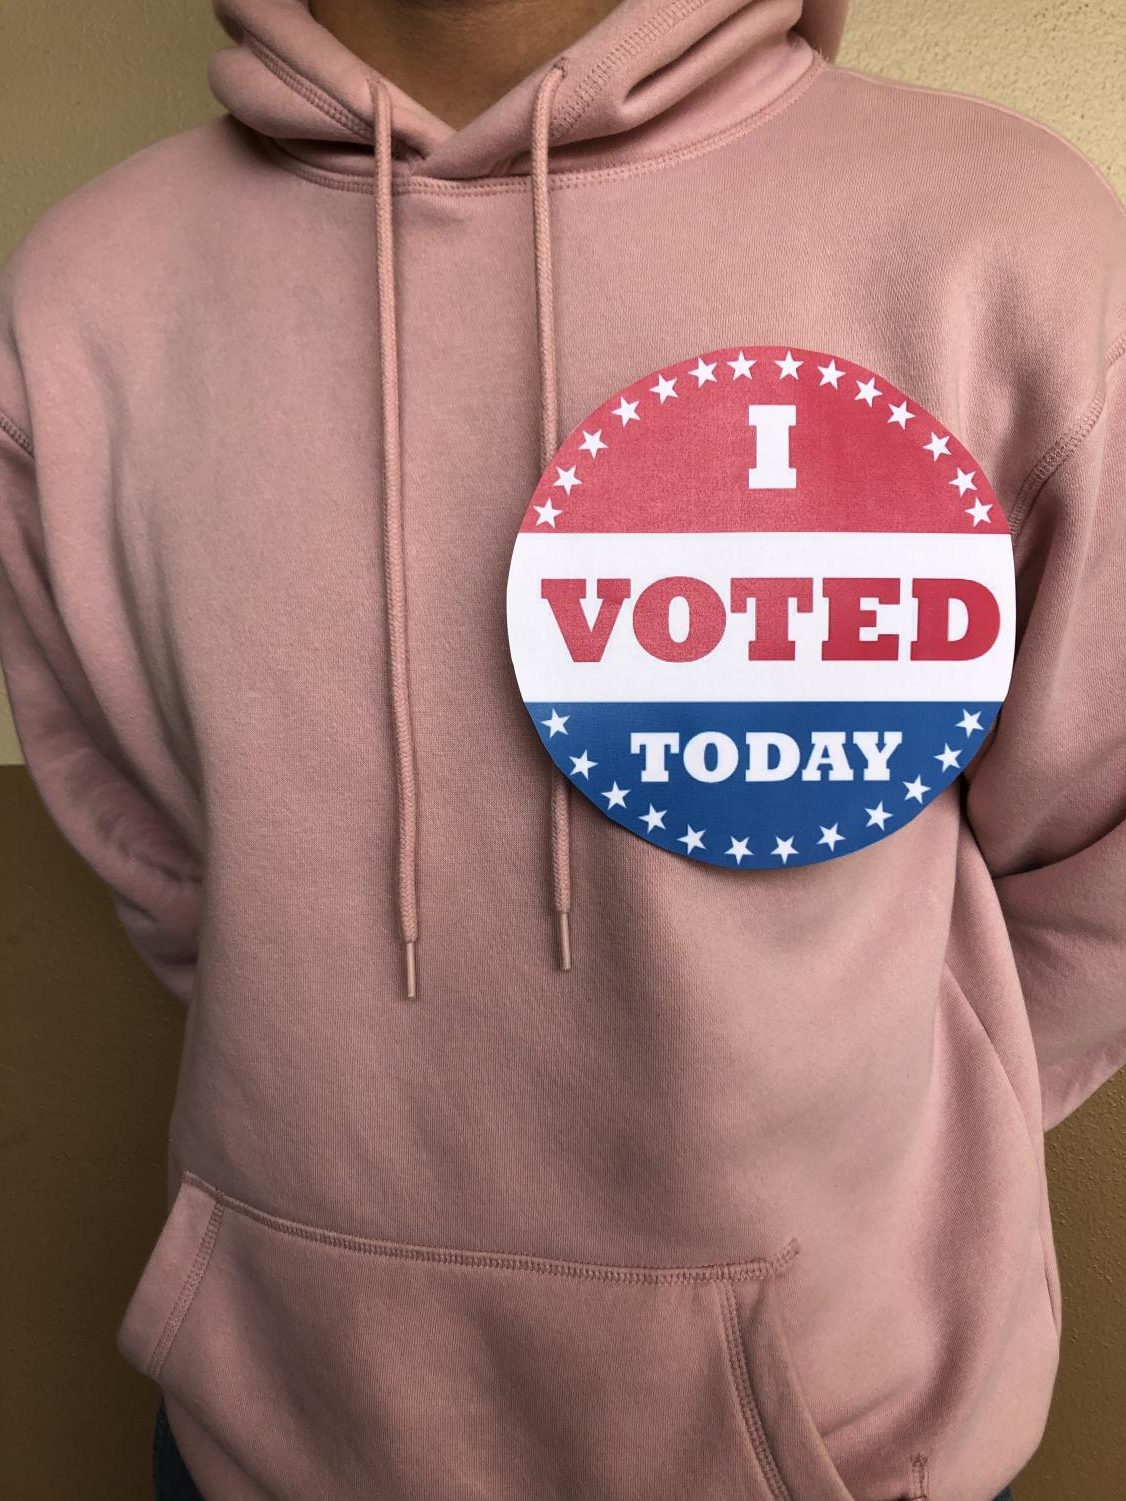 YOUTH VOTER TURNOUT IS STILL LOW DESPITE OUTREACH